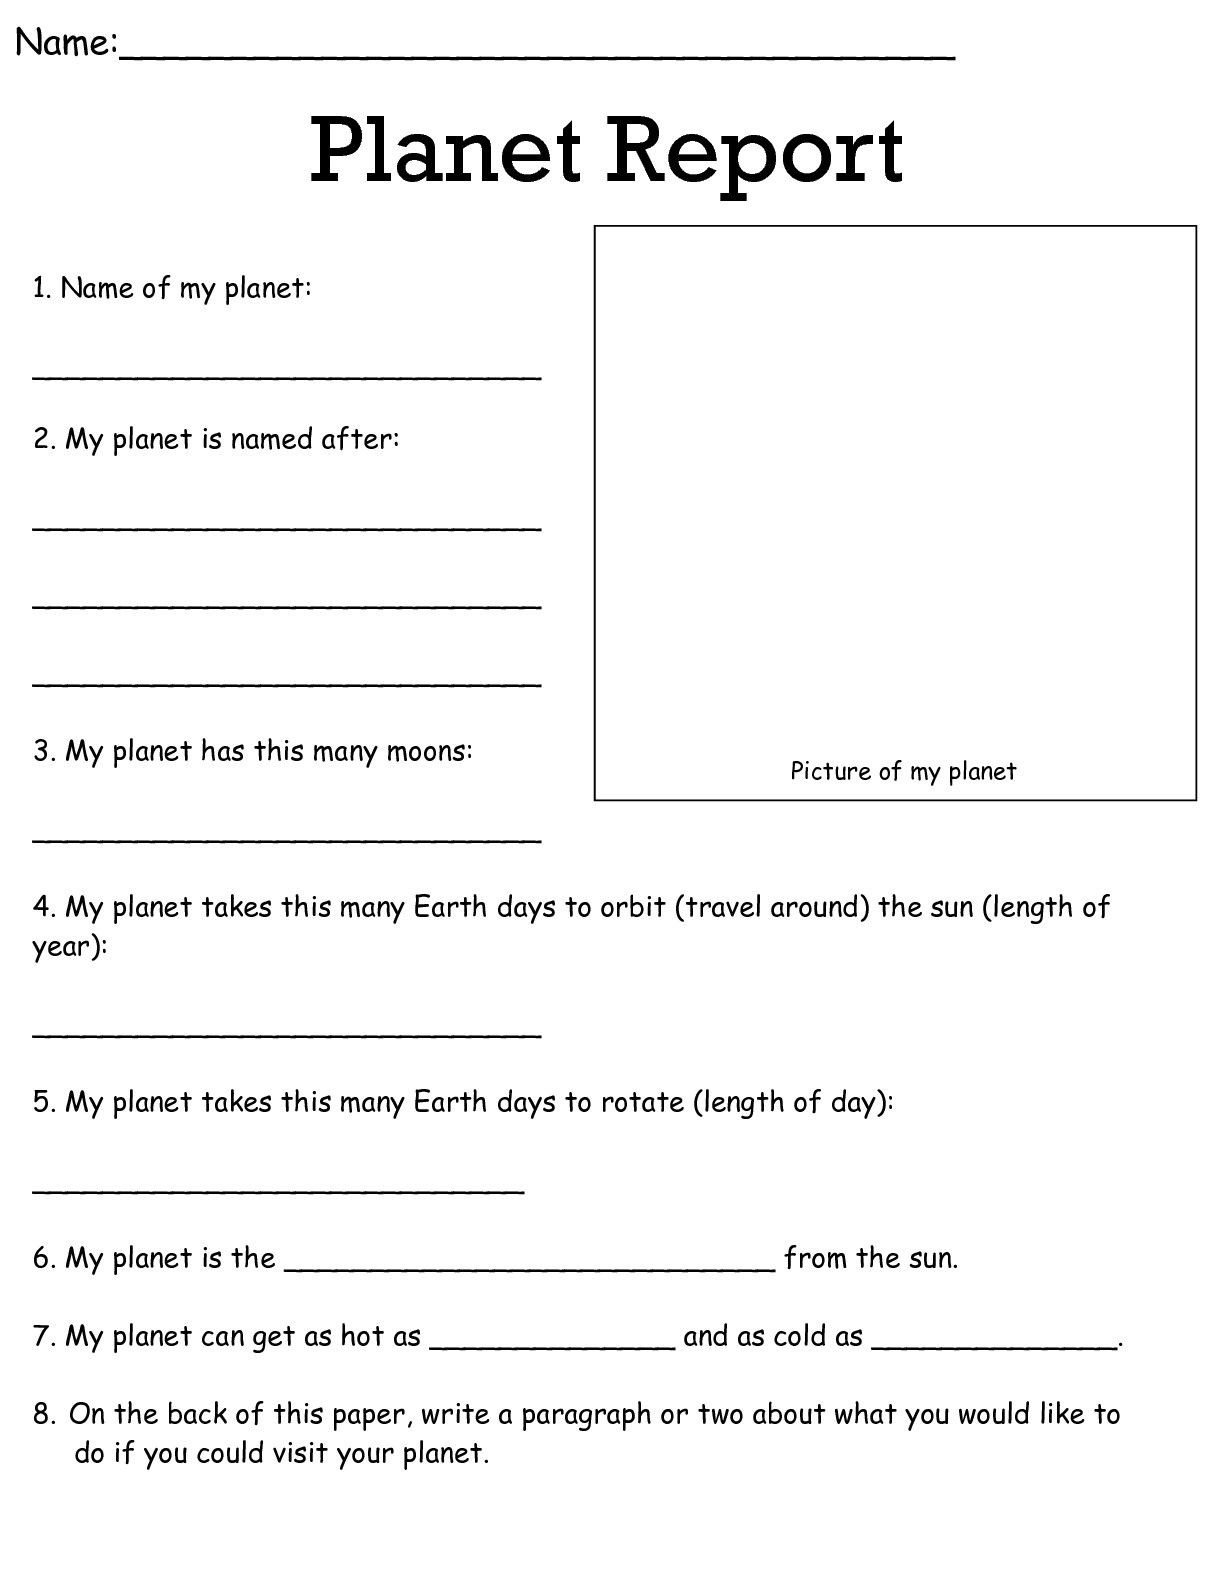 job worksheets 5th 6th science worksheets science worksheets grade 3 social stu s worksheets printable